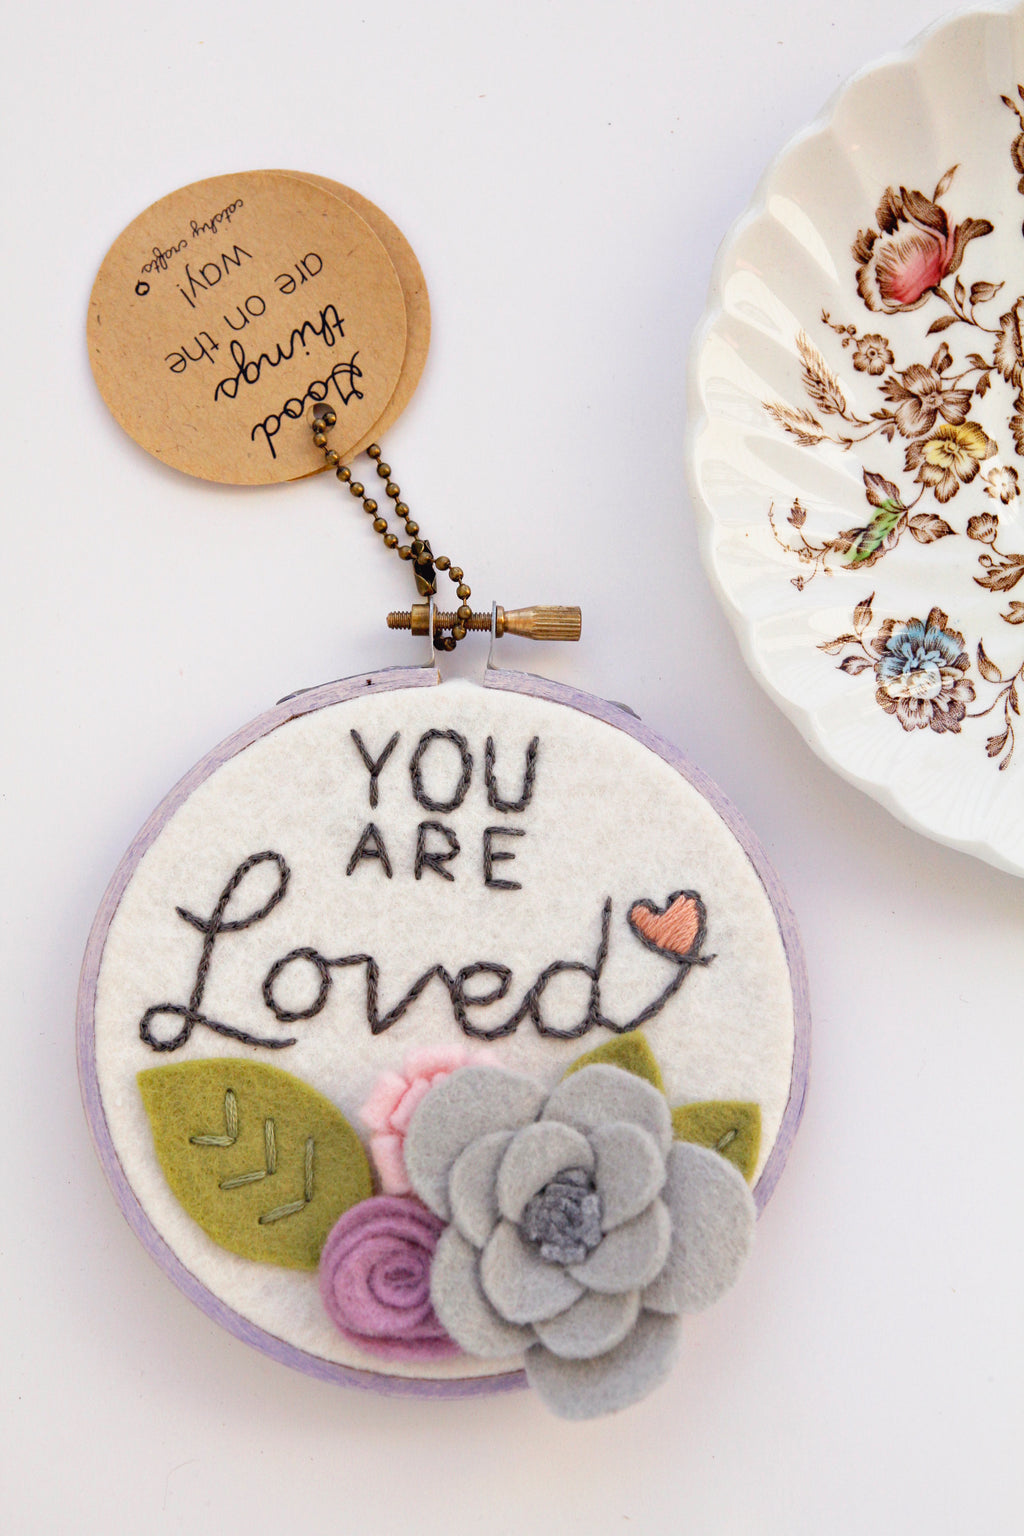 You Are Loved (Lavender) Embroidery Hoop Art